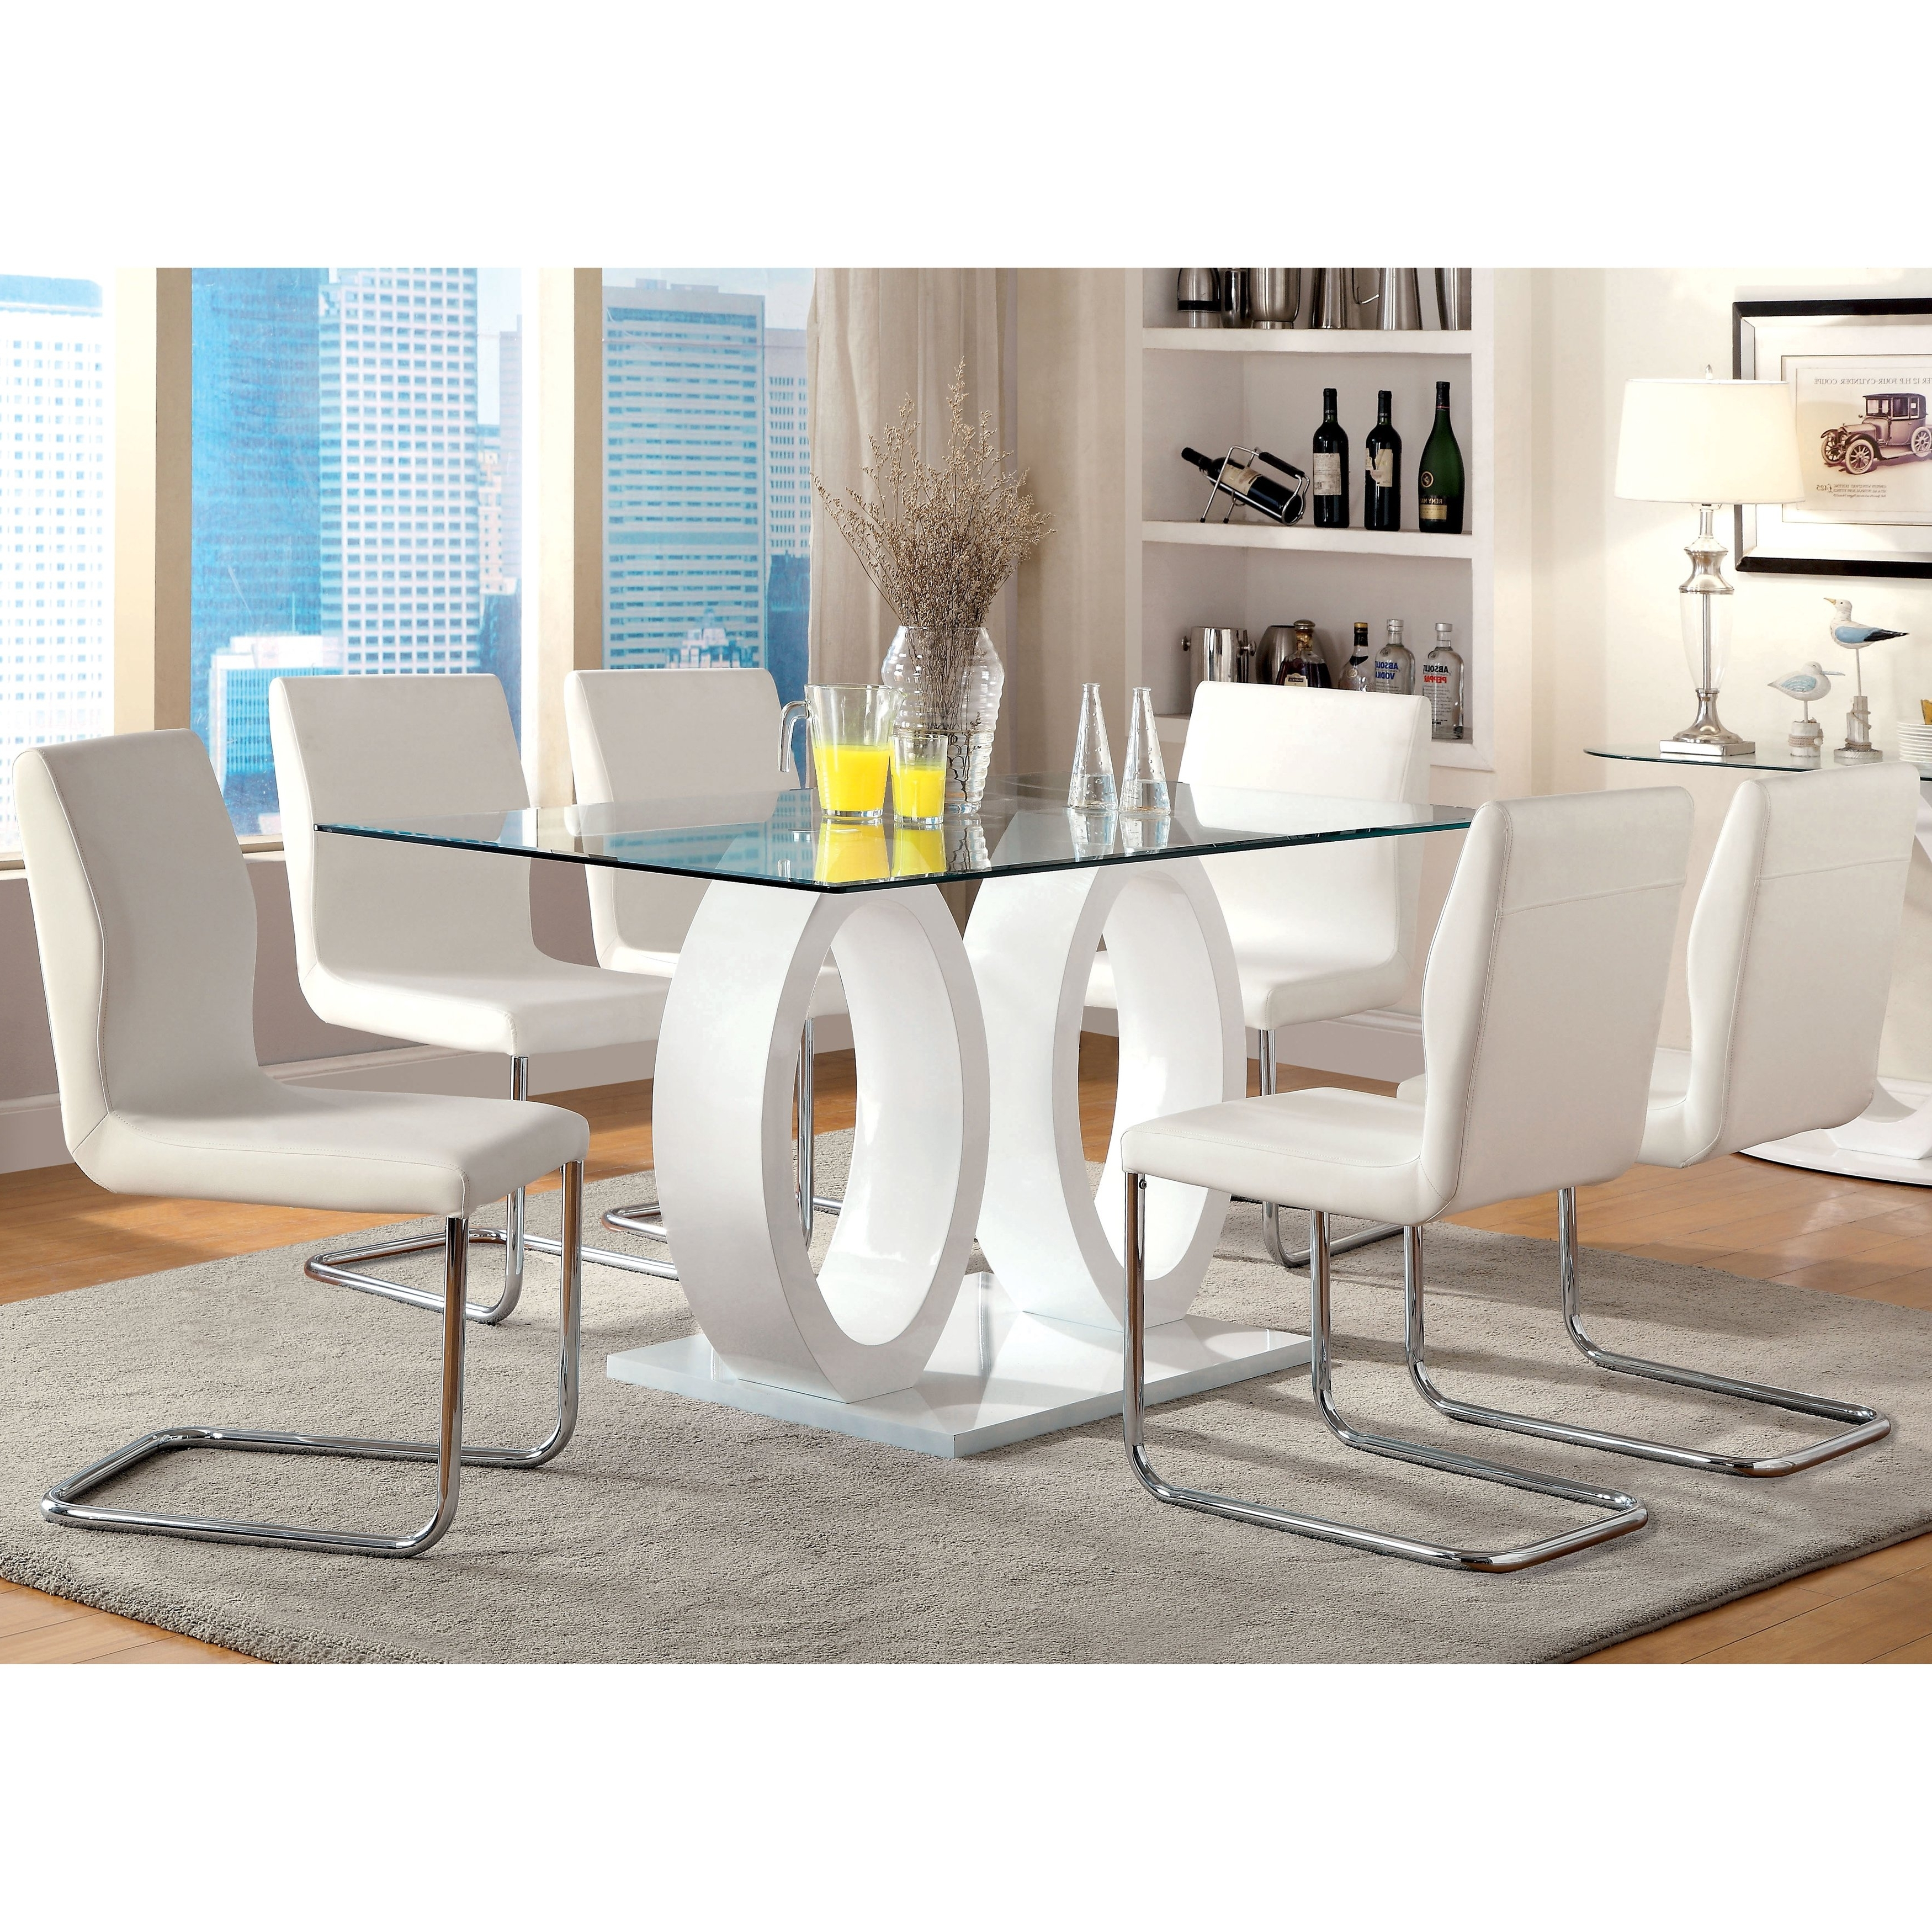 Newest Shop Furniture Of America Olgette Contemporary High Gloss Dining Intended For High Gloss Dining Room Furniture (Gallery 19 of 25)